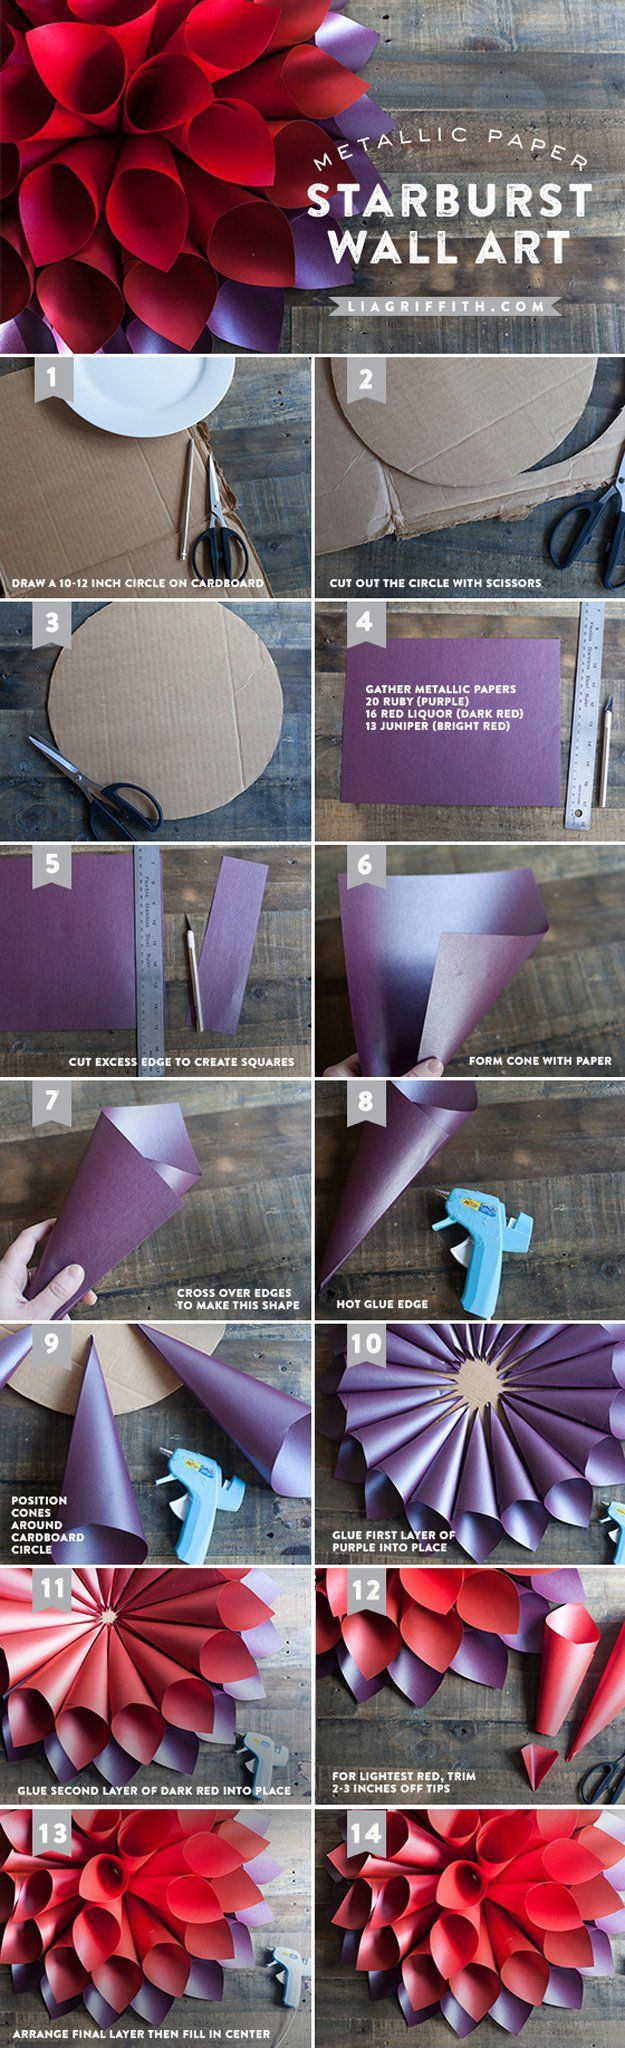 20 Cool Home Decor Wall Art Ideas for You to Craft DIYReady.com   Easy DIY Crafts, Fun Projects, & DIY Craft Ideas For Kids & Adults